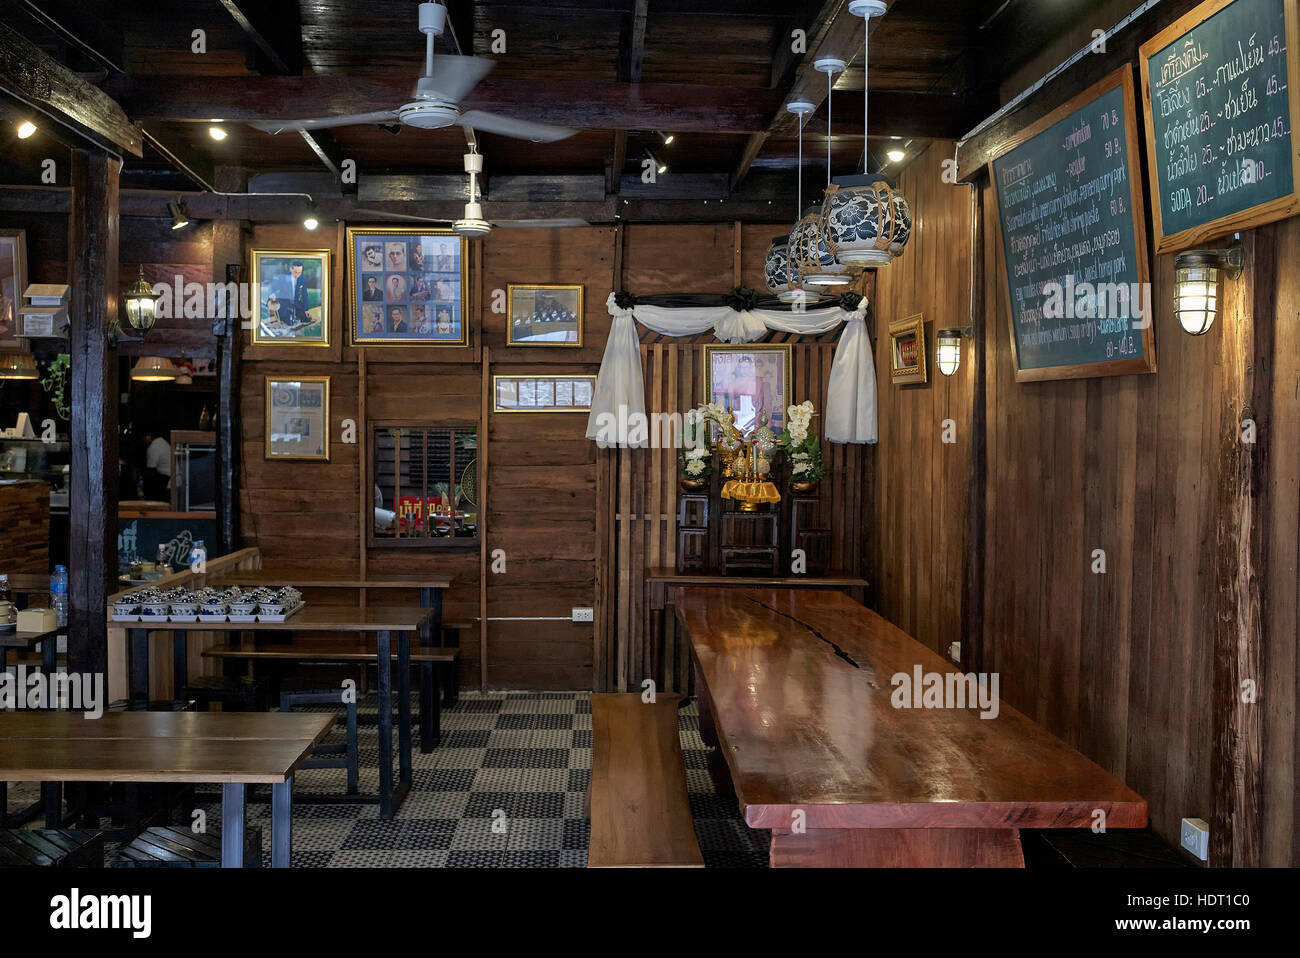 Interior View Of A Traditional Wooden Clad Vintage Style